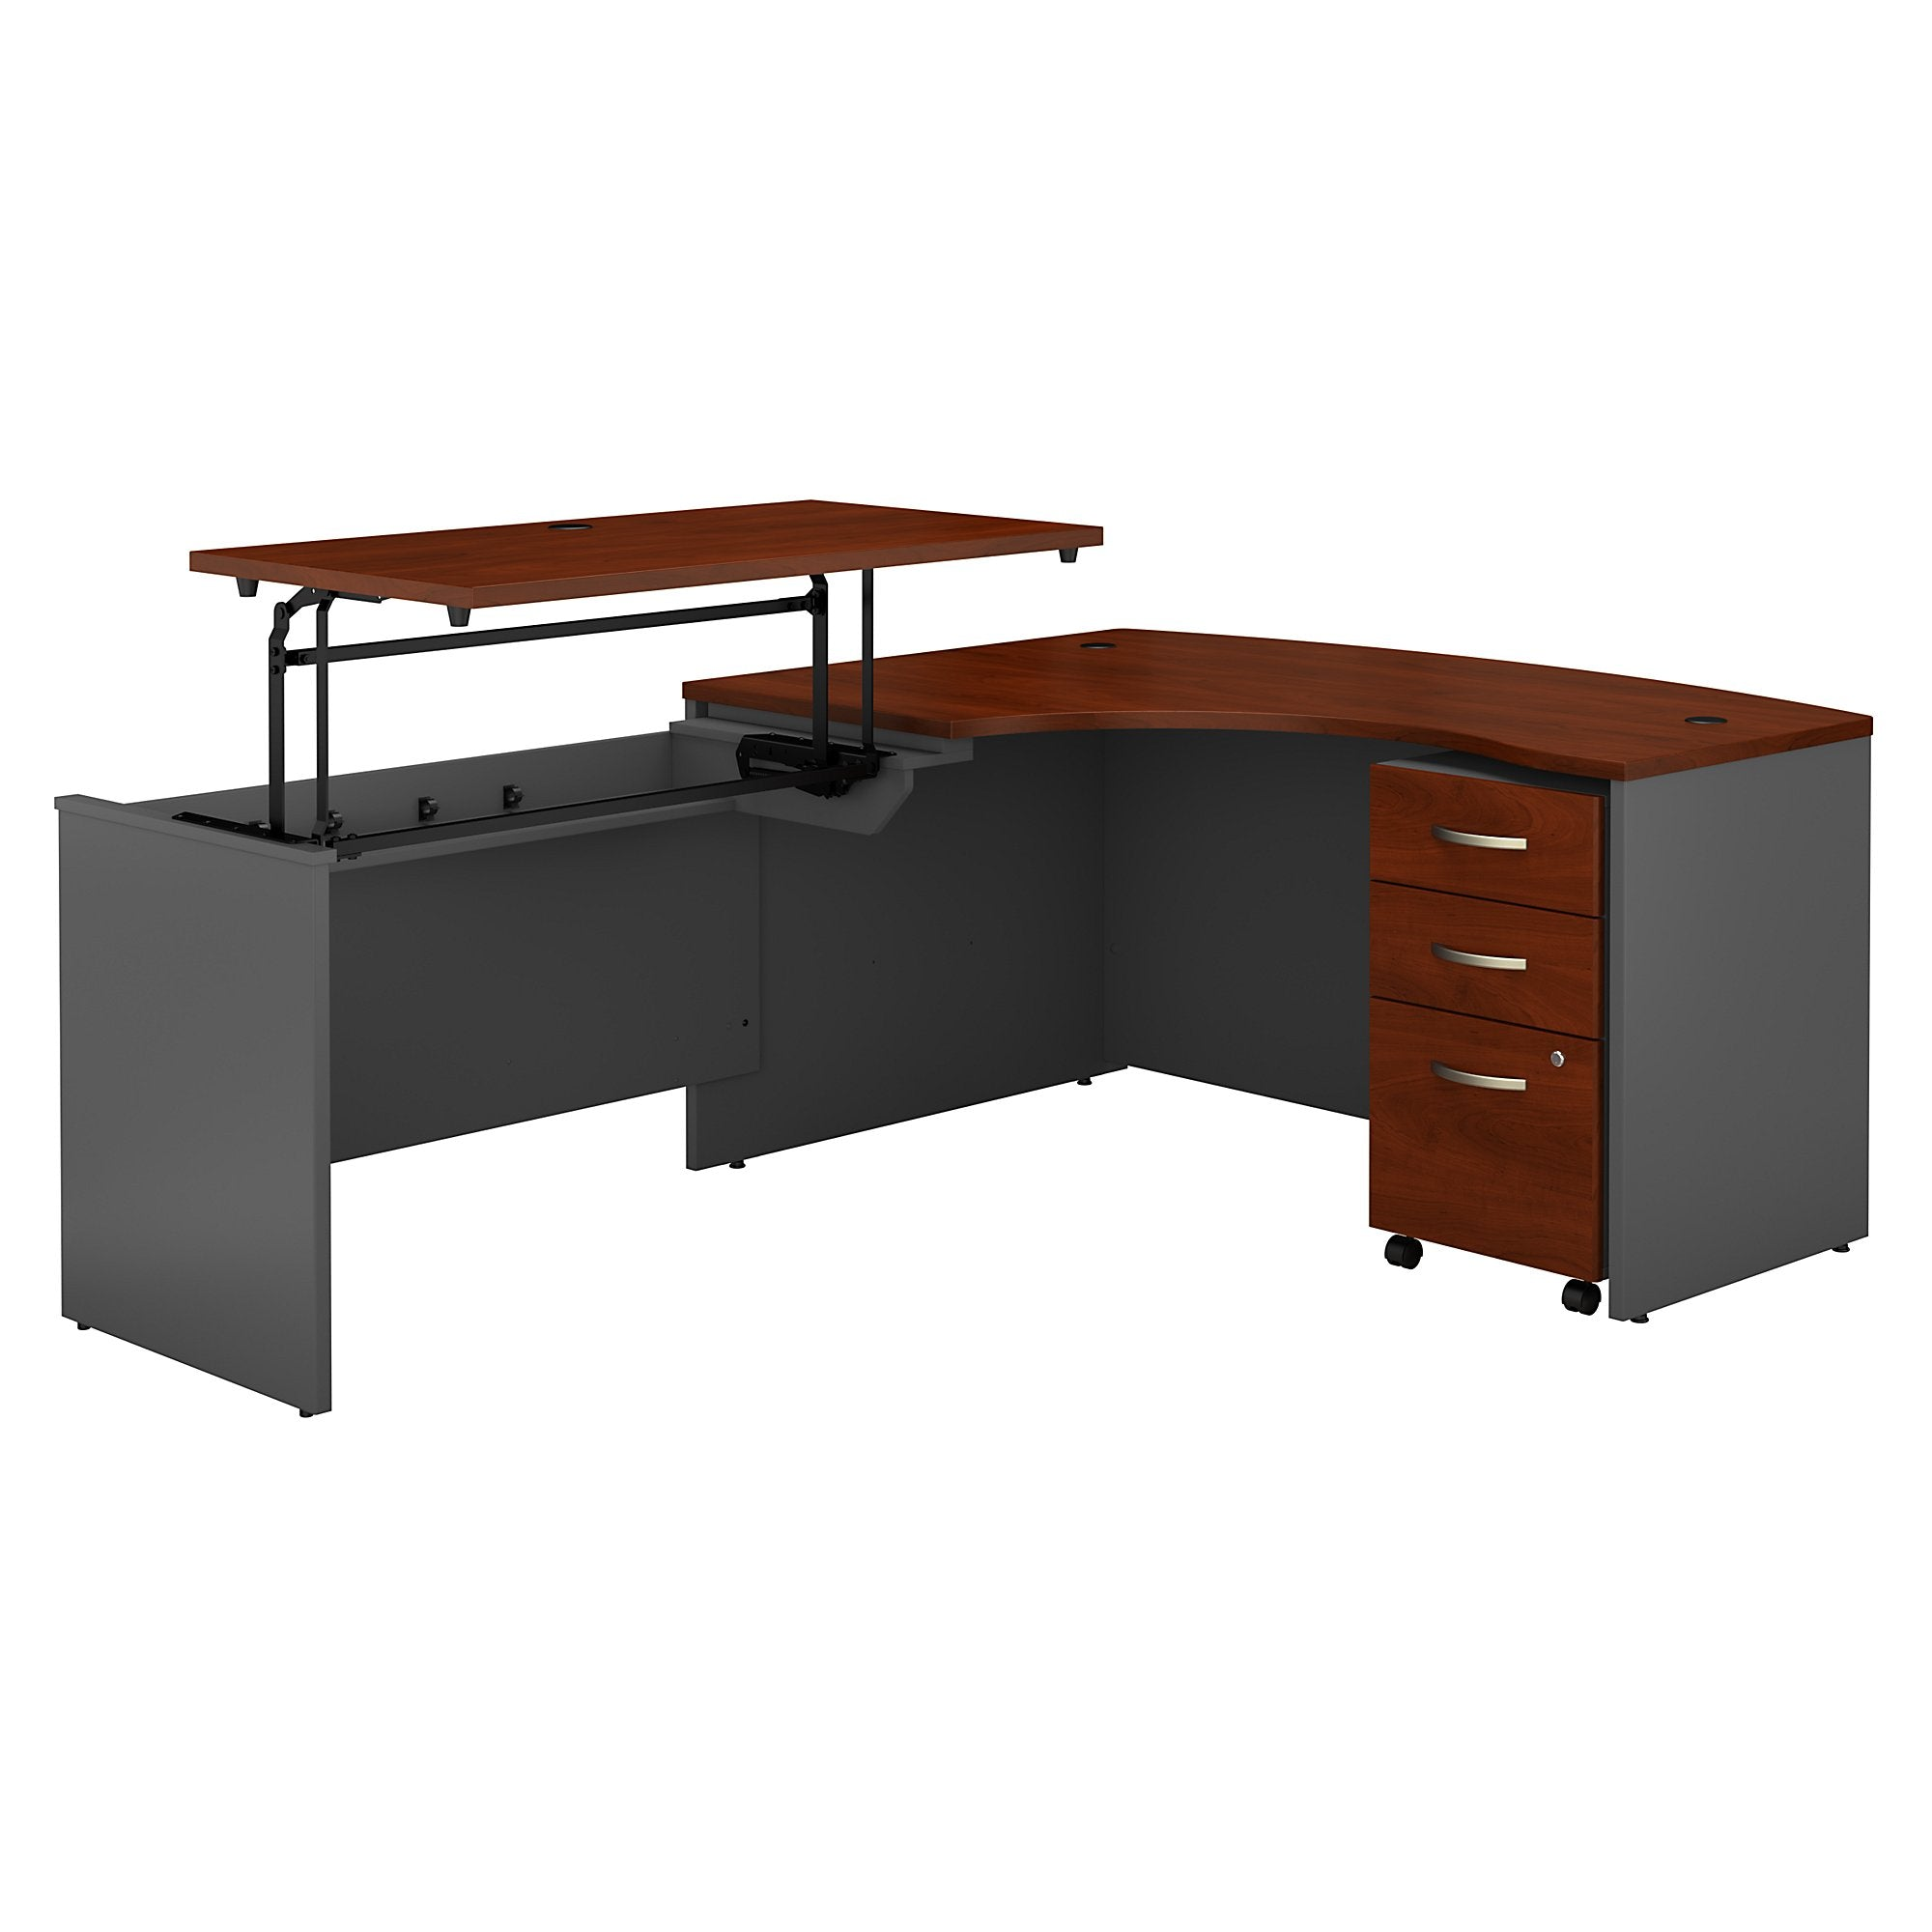 Bush Business Furniture Series C 60W x 43D Left Hand 3 Position Sit to Stand L Shaped Desk with Mobile File Cabinet | Hansen Cherry/Graphite Gray